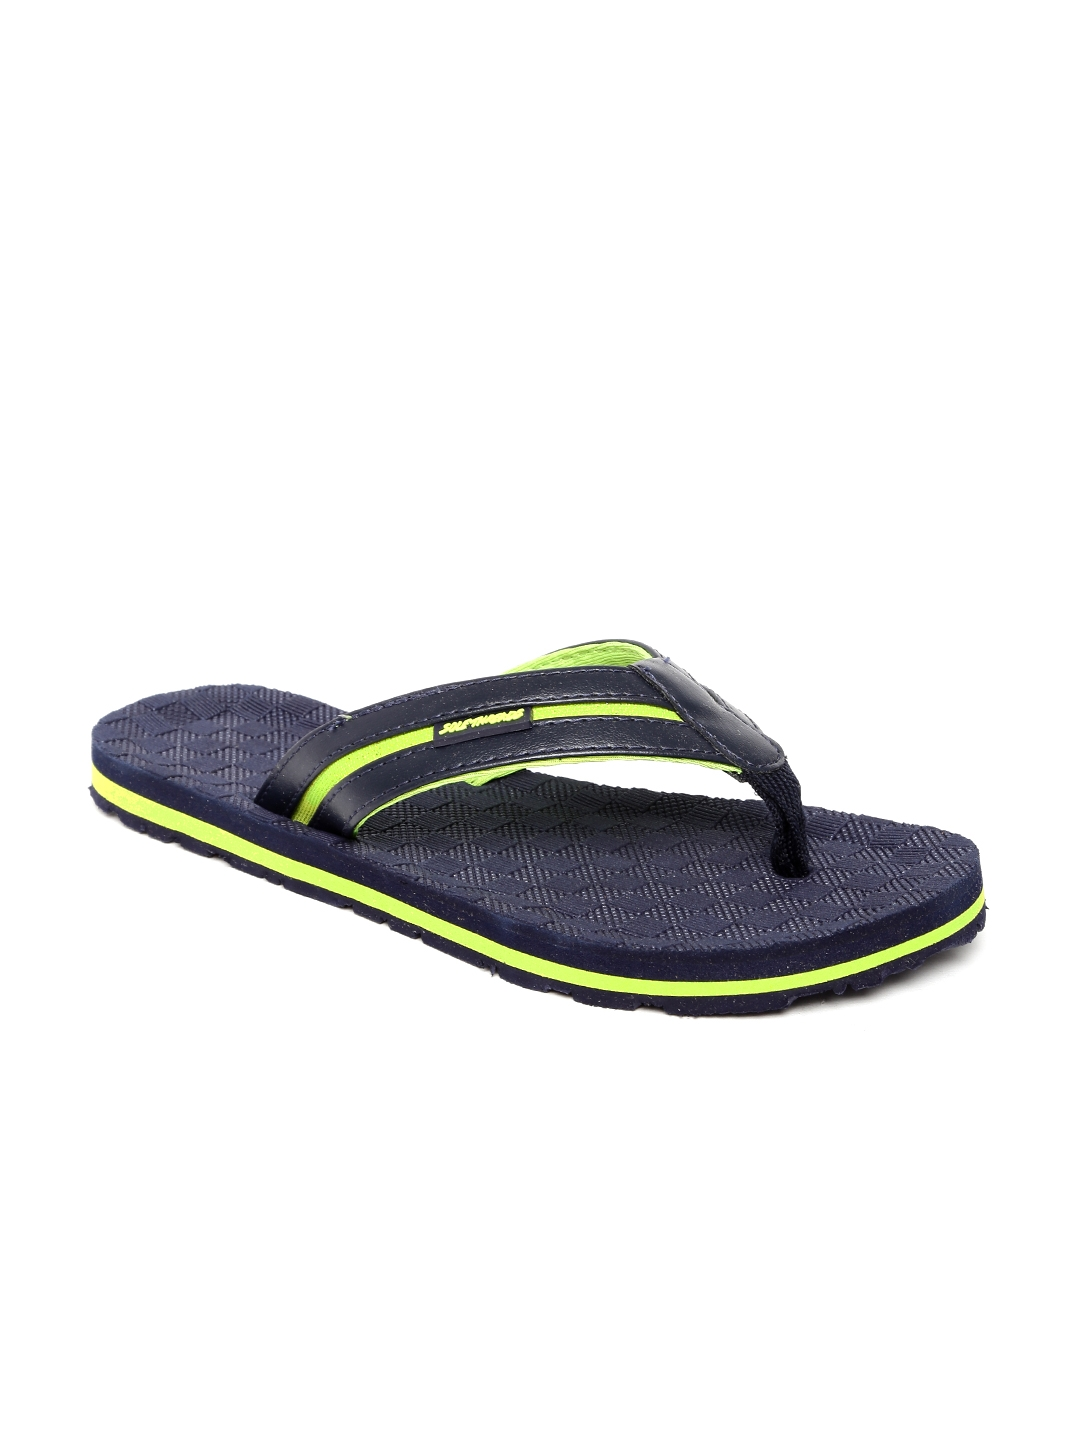 939ef4c51 Buy Sole Threads Men Navy Flip Flops - Flip Flops for Men 1206012 ...